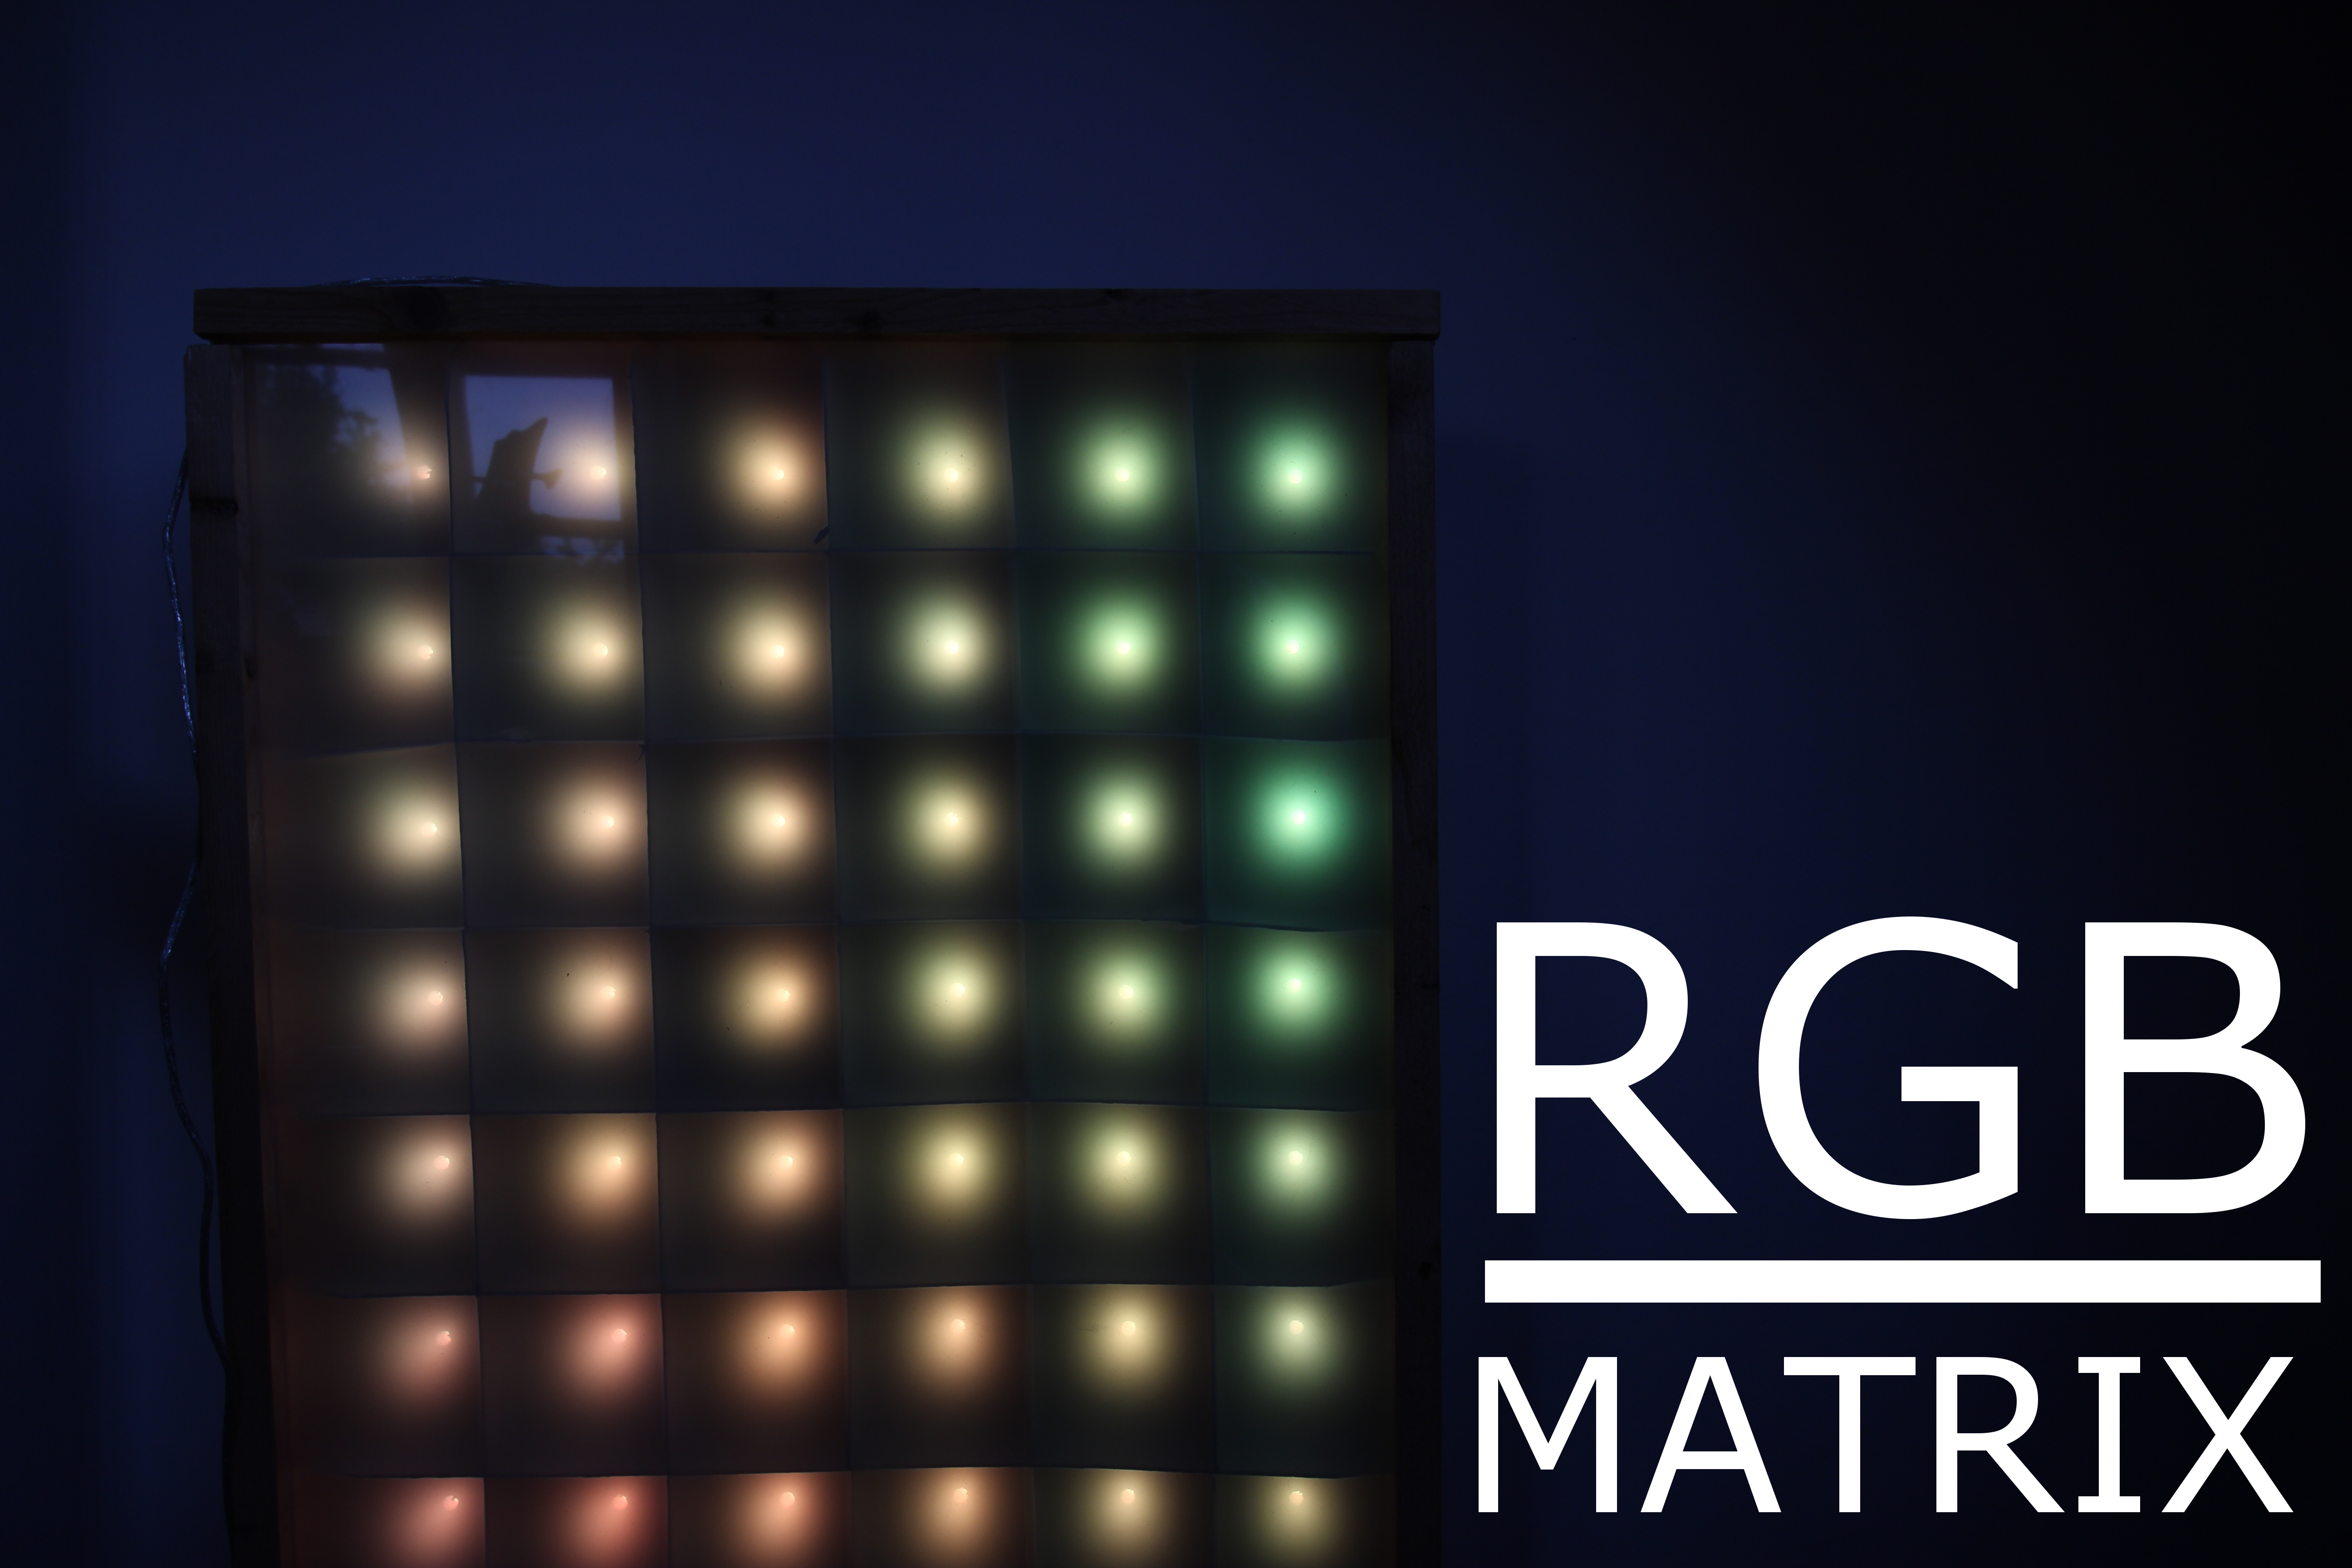 Picture of LED-matrix on a Budget